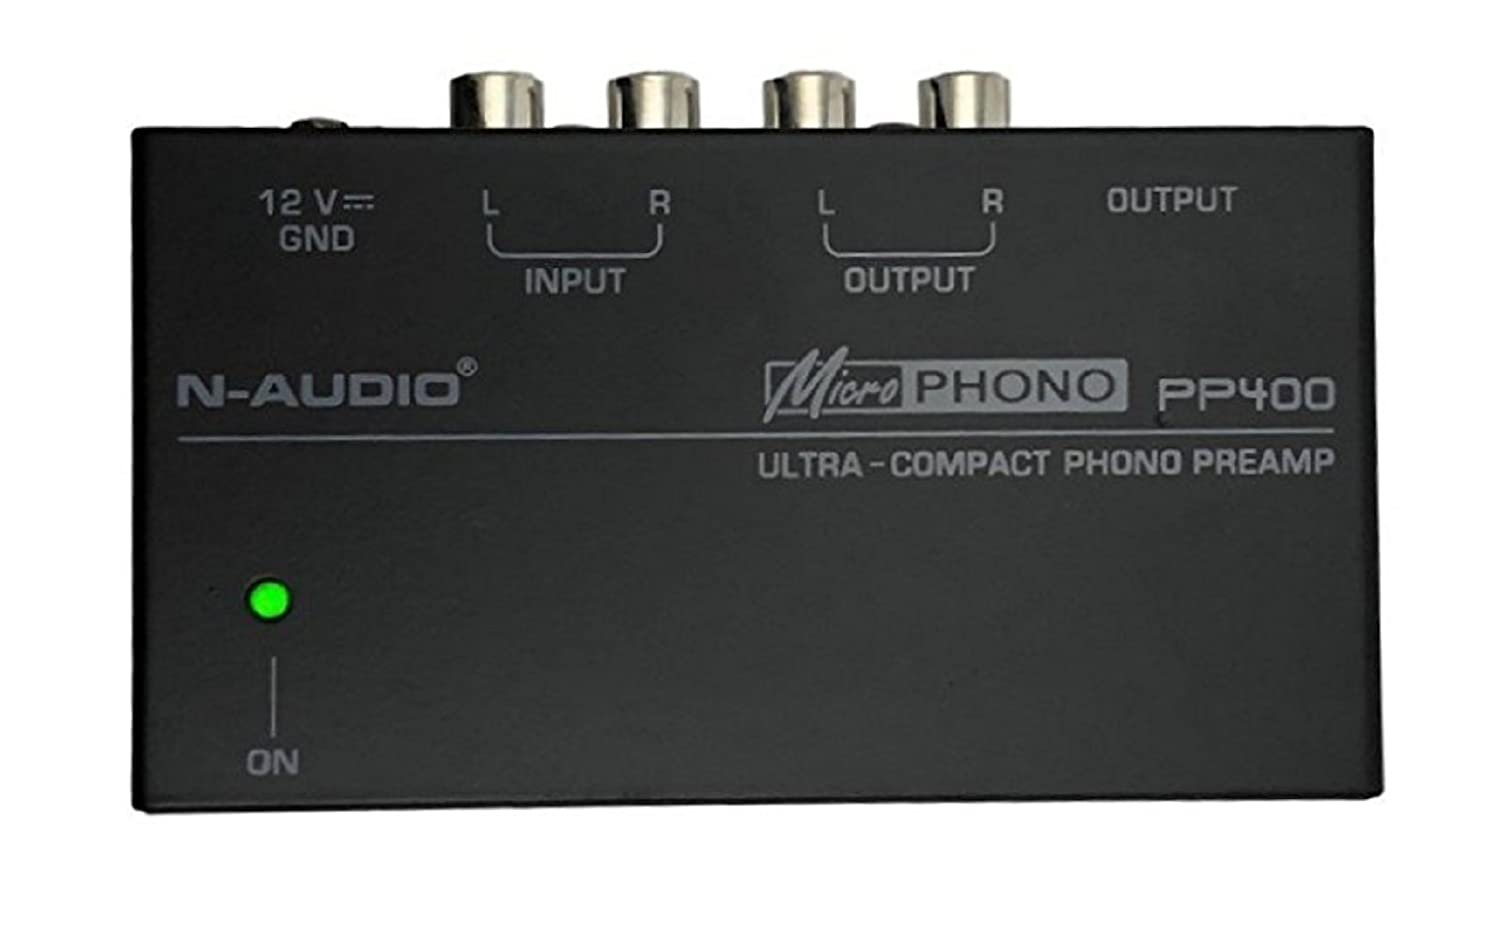 Ultra-Compact Phono Preamp Enping Gdok Audio Equipment Factory PP400